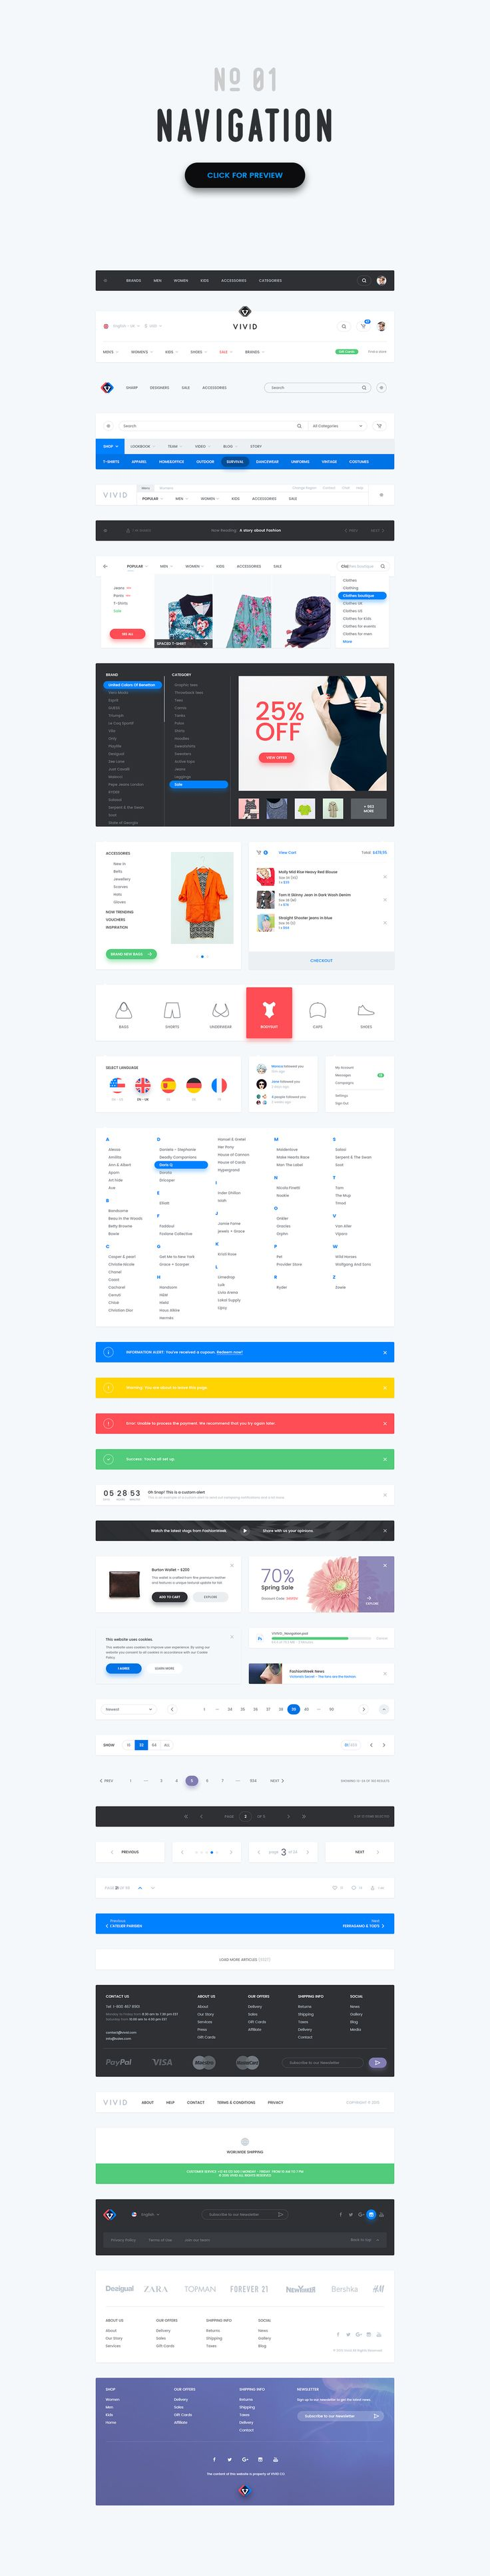 50%- Vivid - Soft Material UI Kit